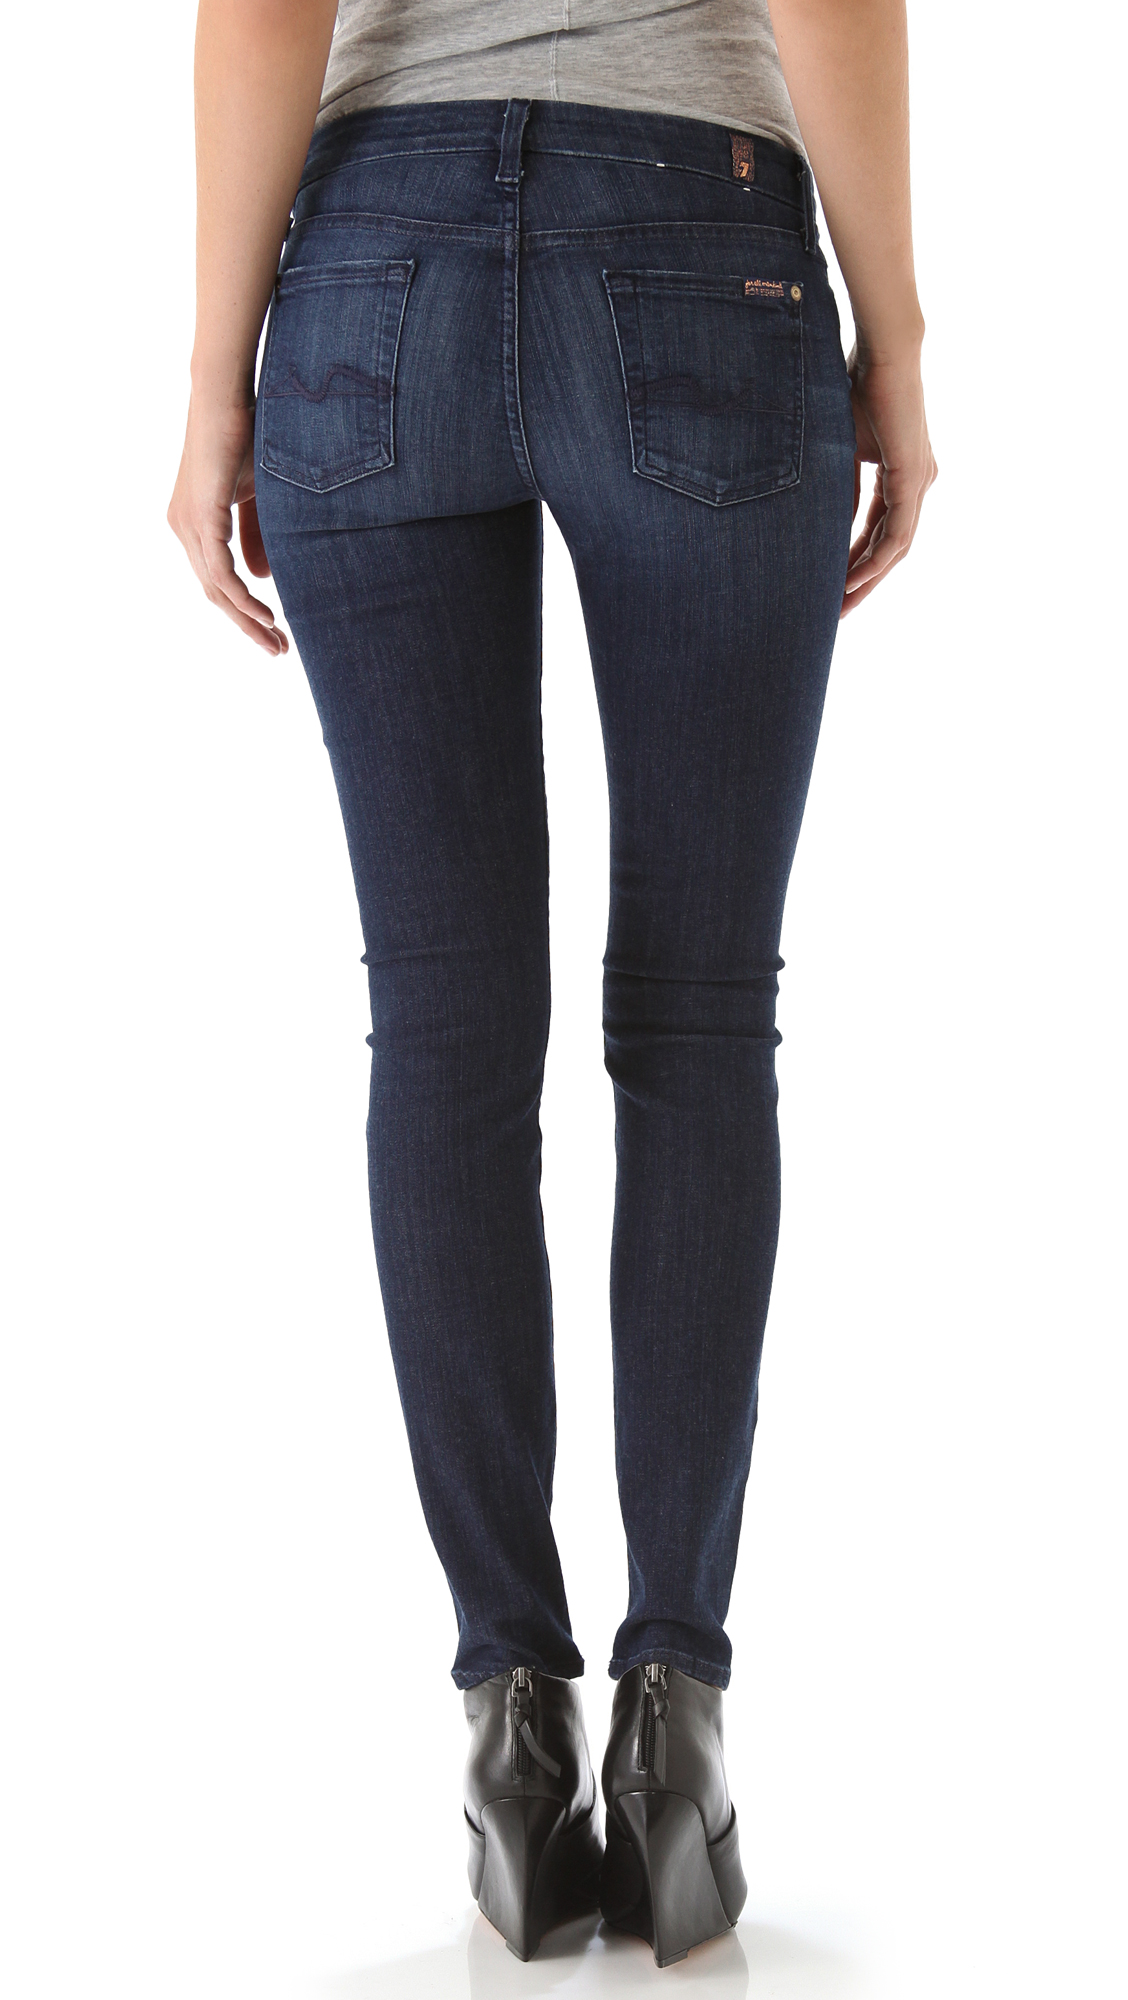 lyst 7 for all mankind kimmie cropped jeans in blue. Black Bedroom Furniture Sets. Home Design Ideas